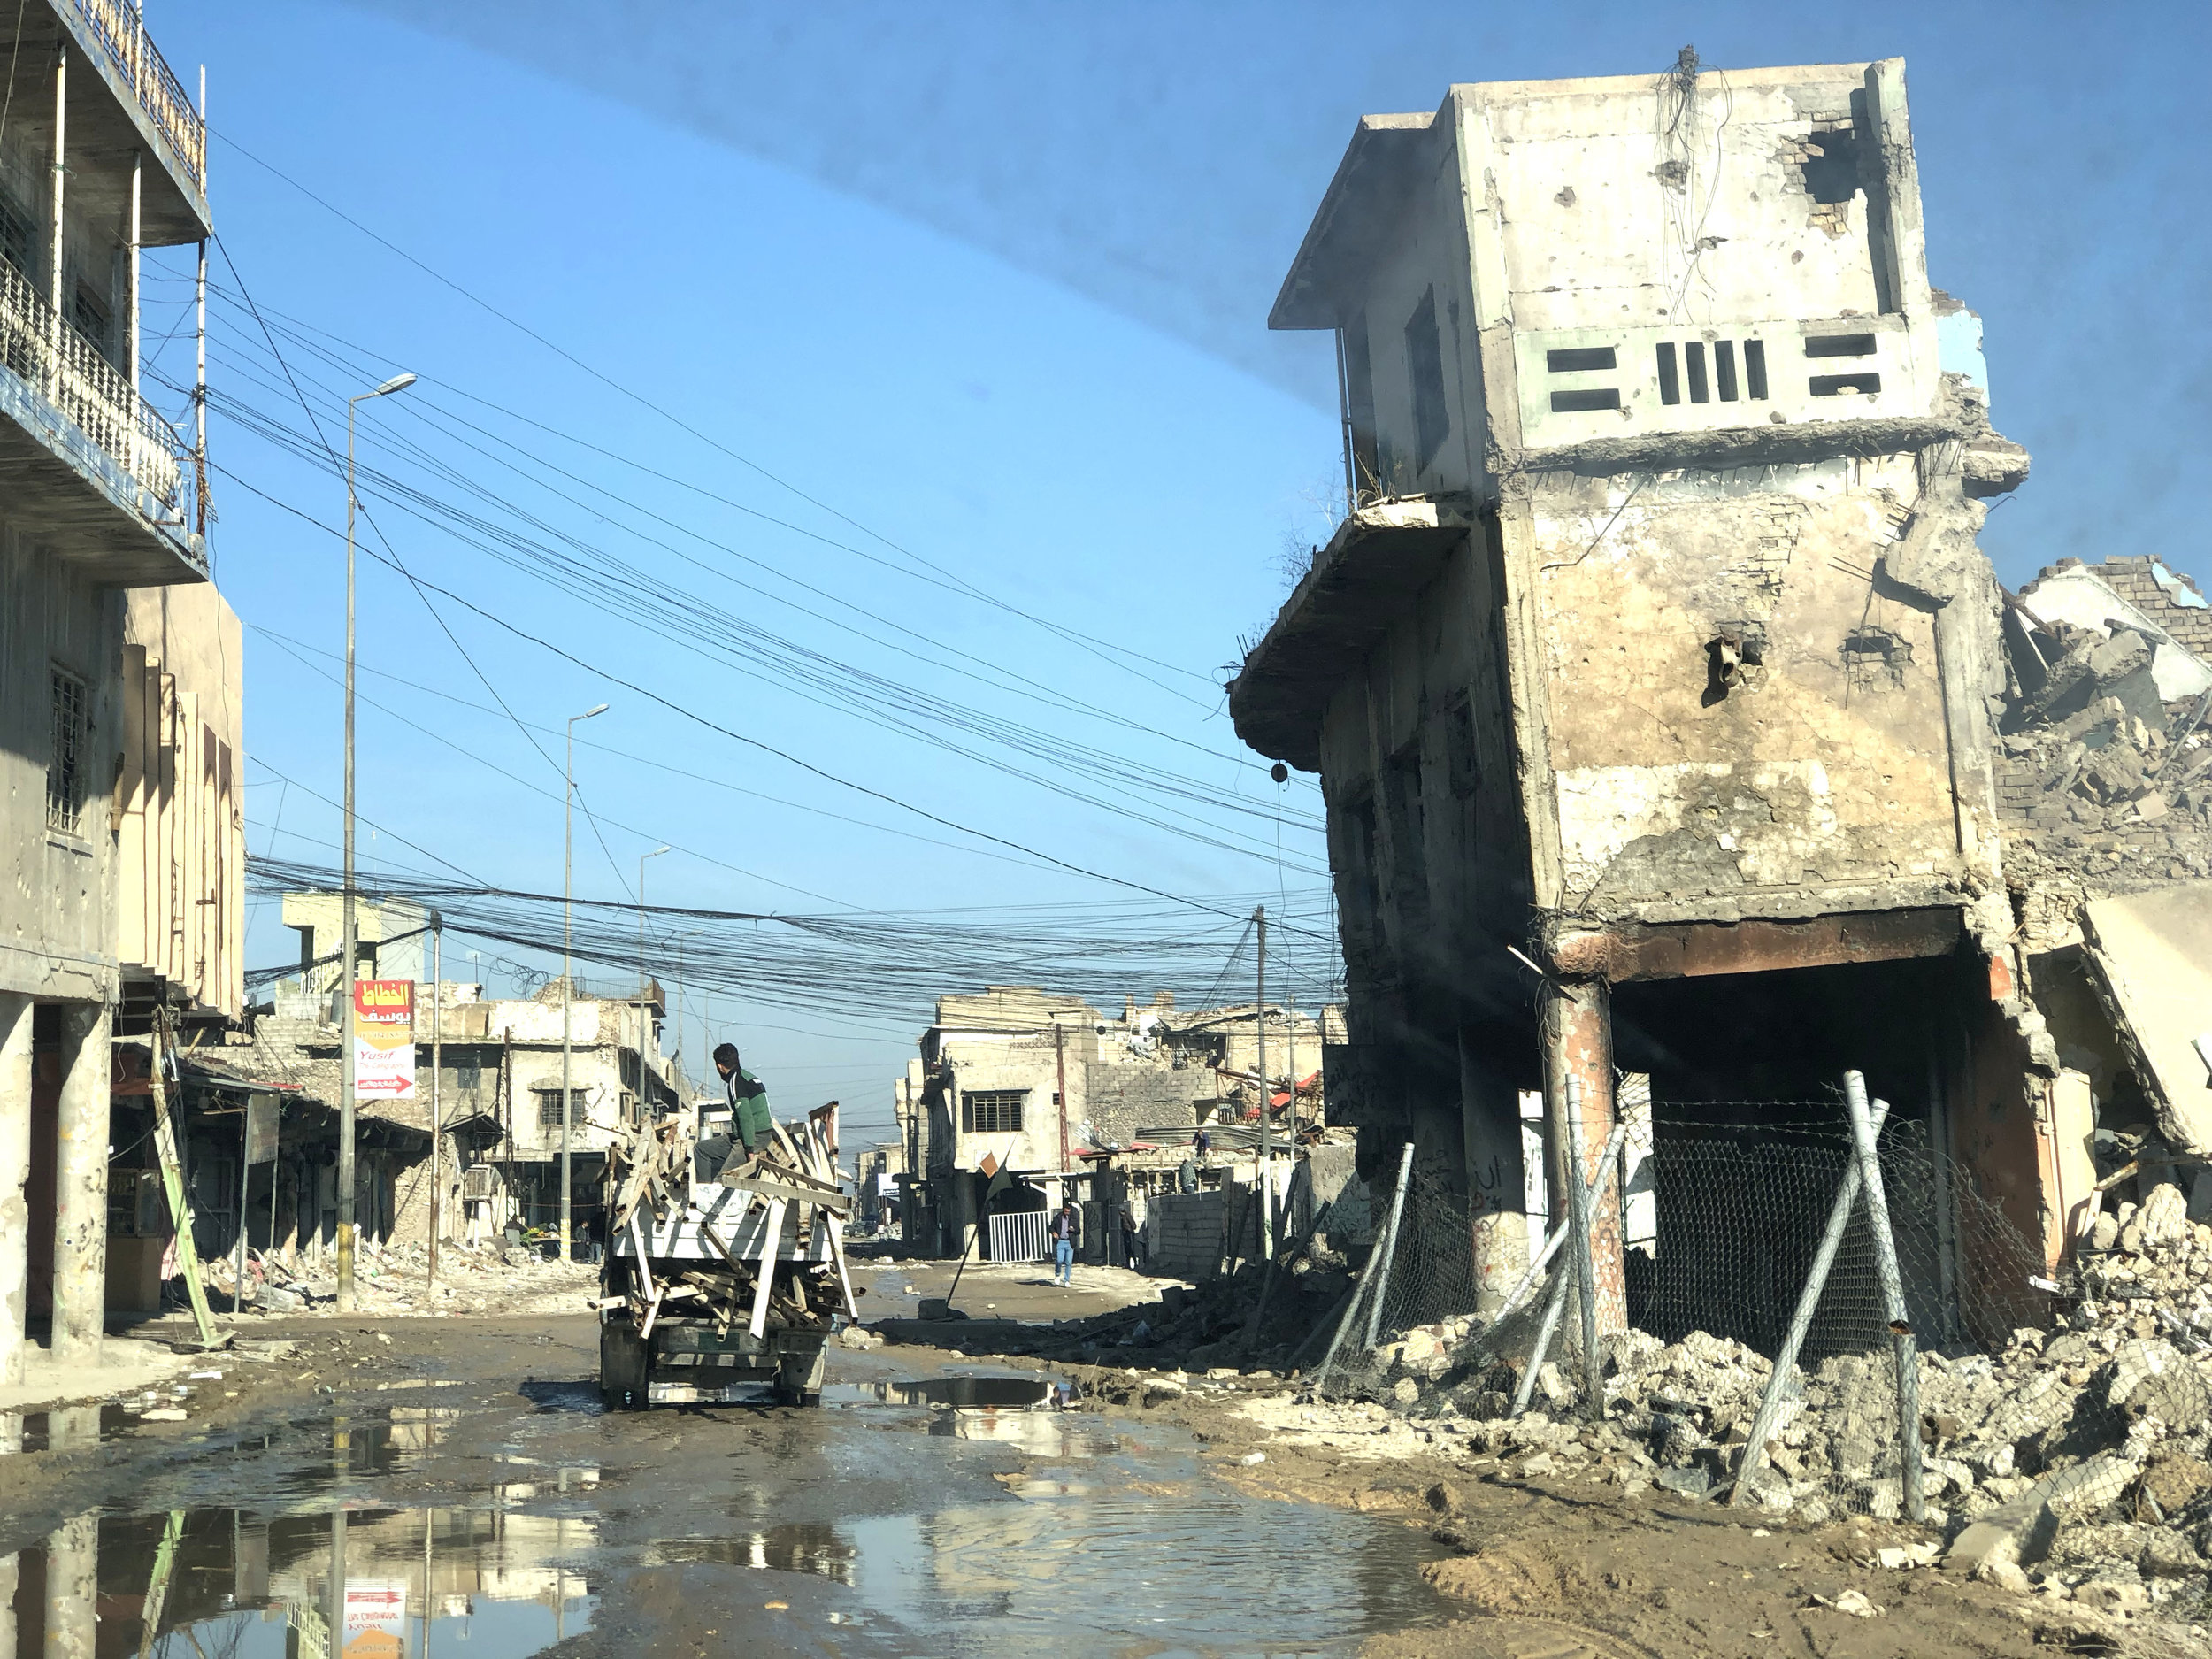 A destroyed block in western Mosul. November, 2018. (Rebecca Gibian)